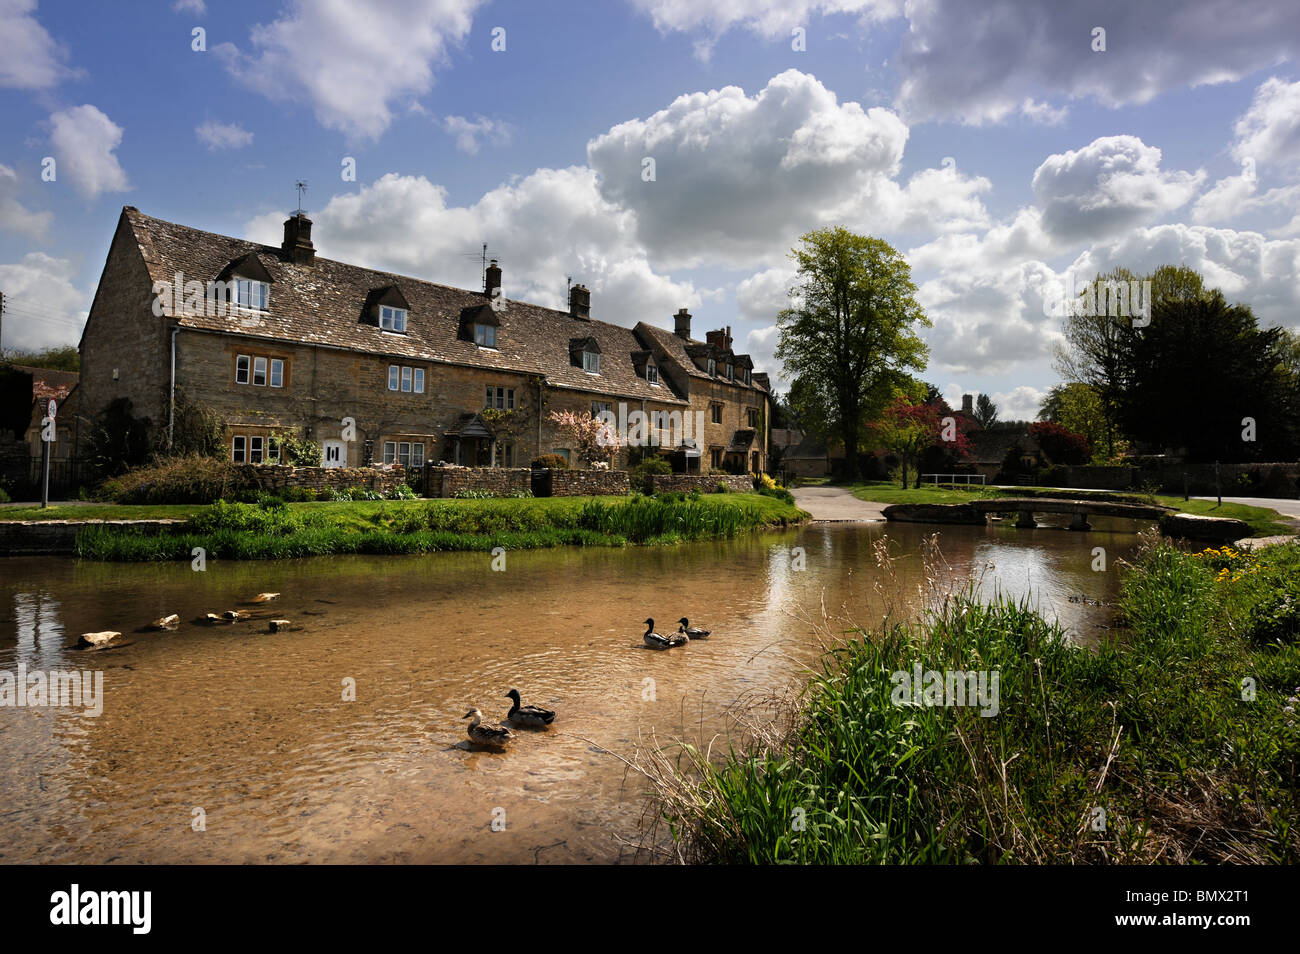 The Cotswold village of Lower Slaughter, Gloucestershire UK - Stock Image